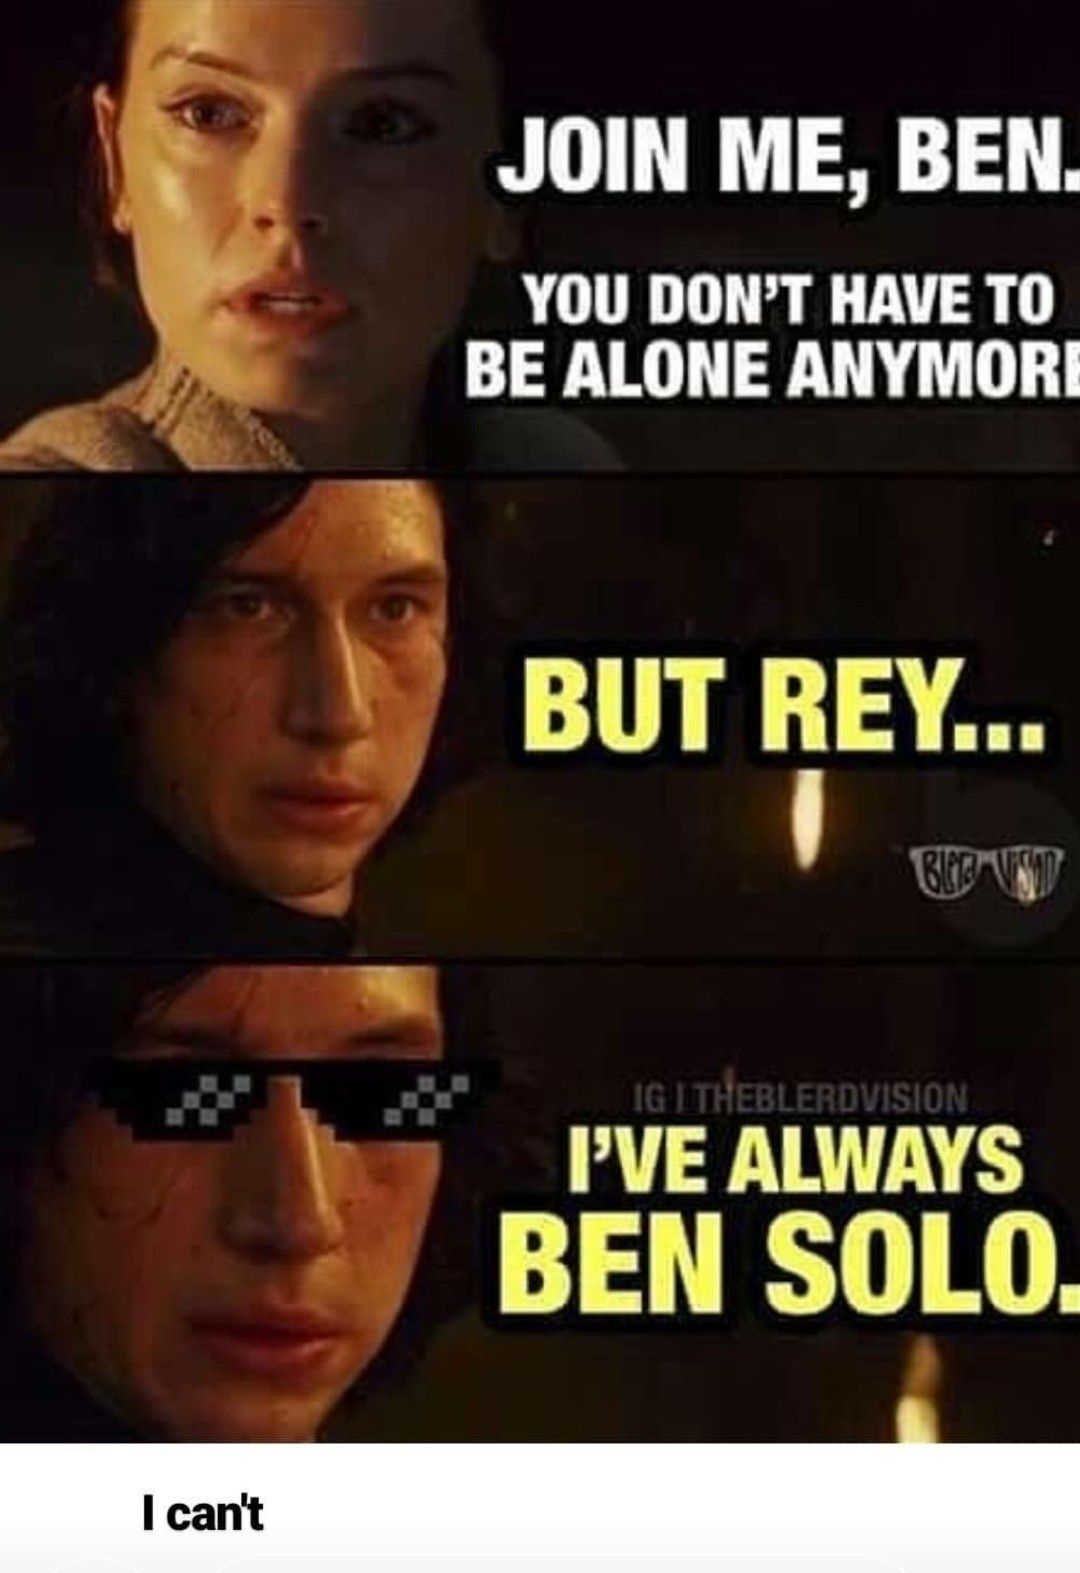 Pin By Caroline Dea On The Awakening Of The Force To A Last Jedi For The Rise Of Skywalker Star Wars Jokes Star Wars Humor Funny Star Wars Memes